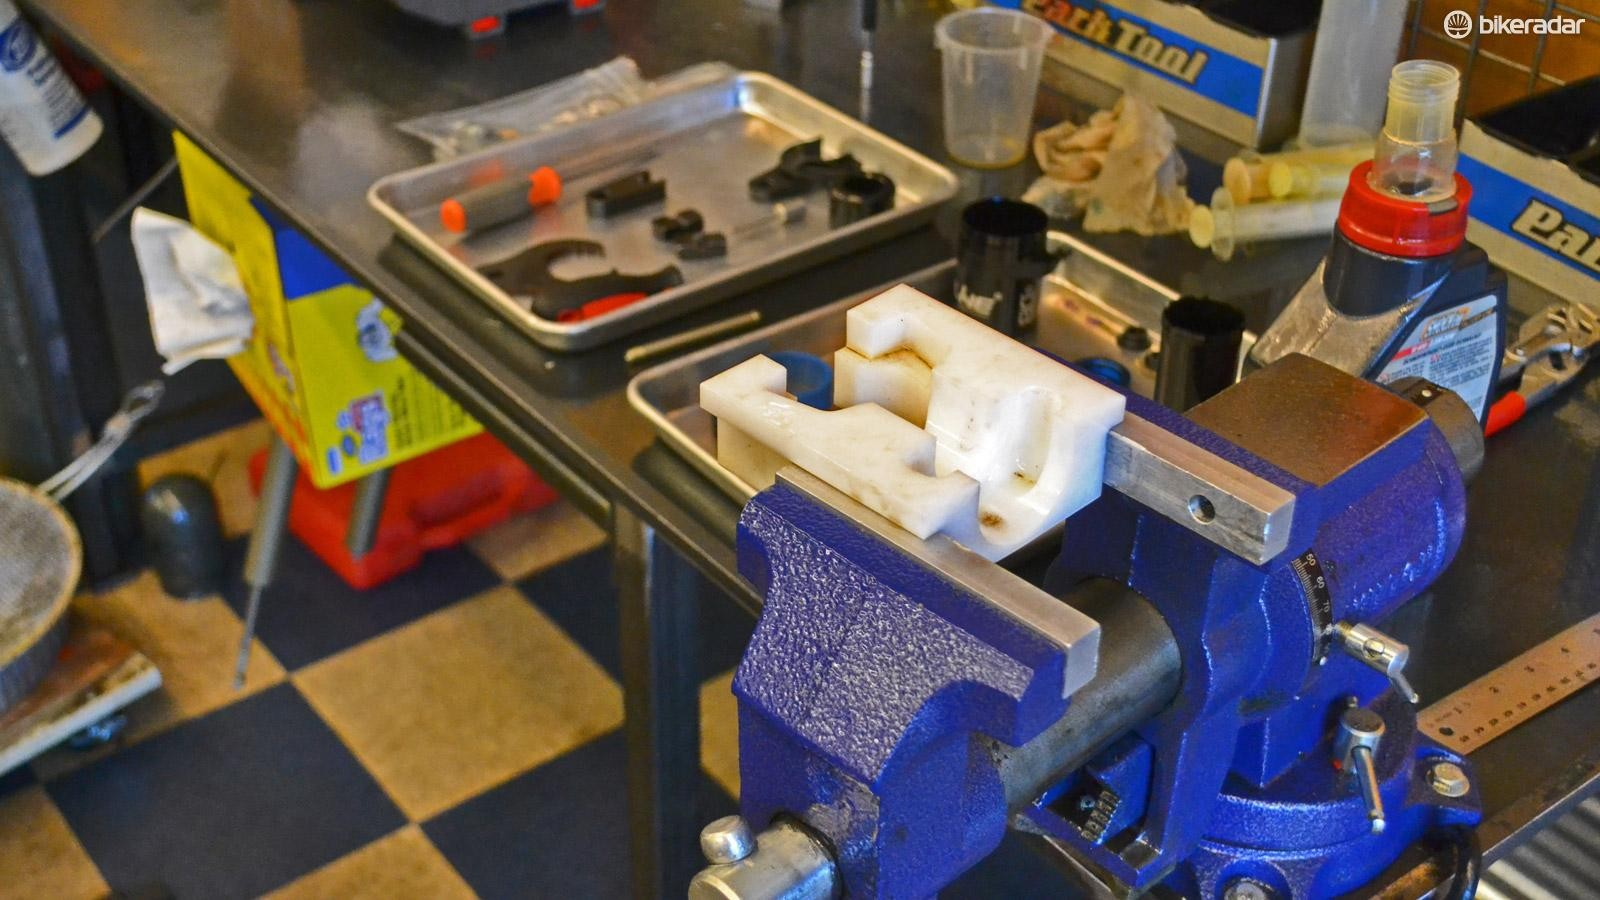 Tools of the trade: a bench vice makes easy work holding small or delicate parts